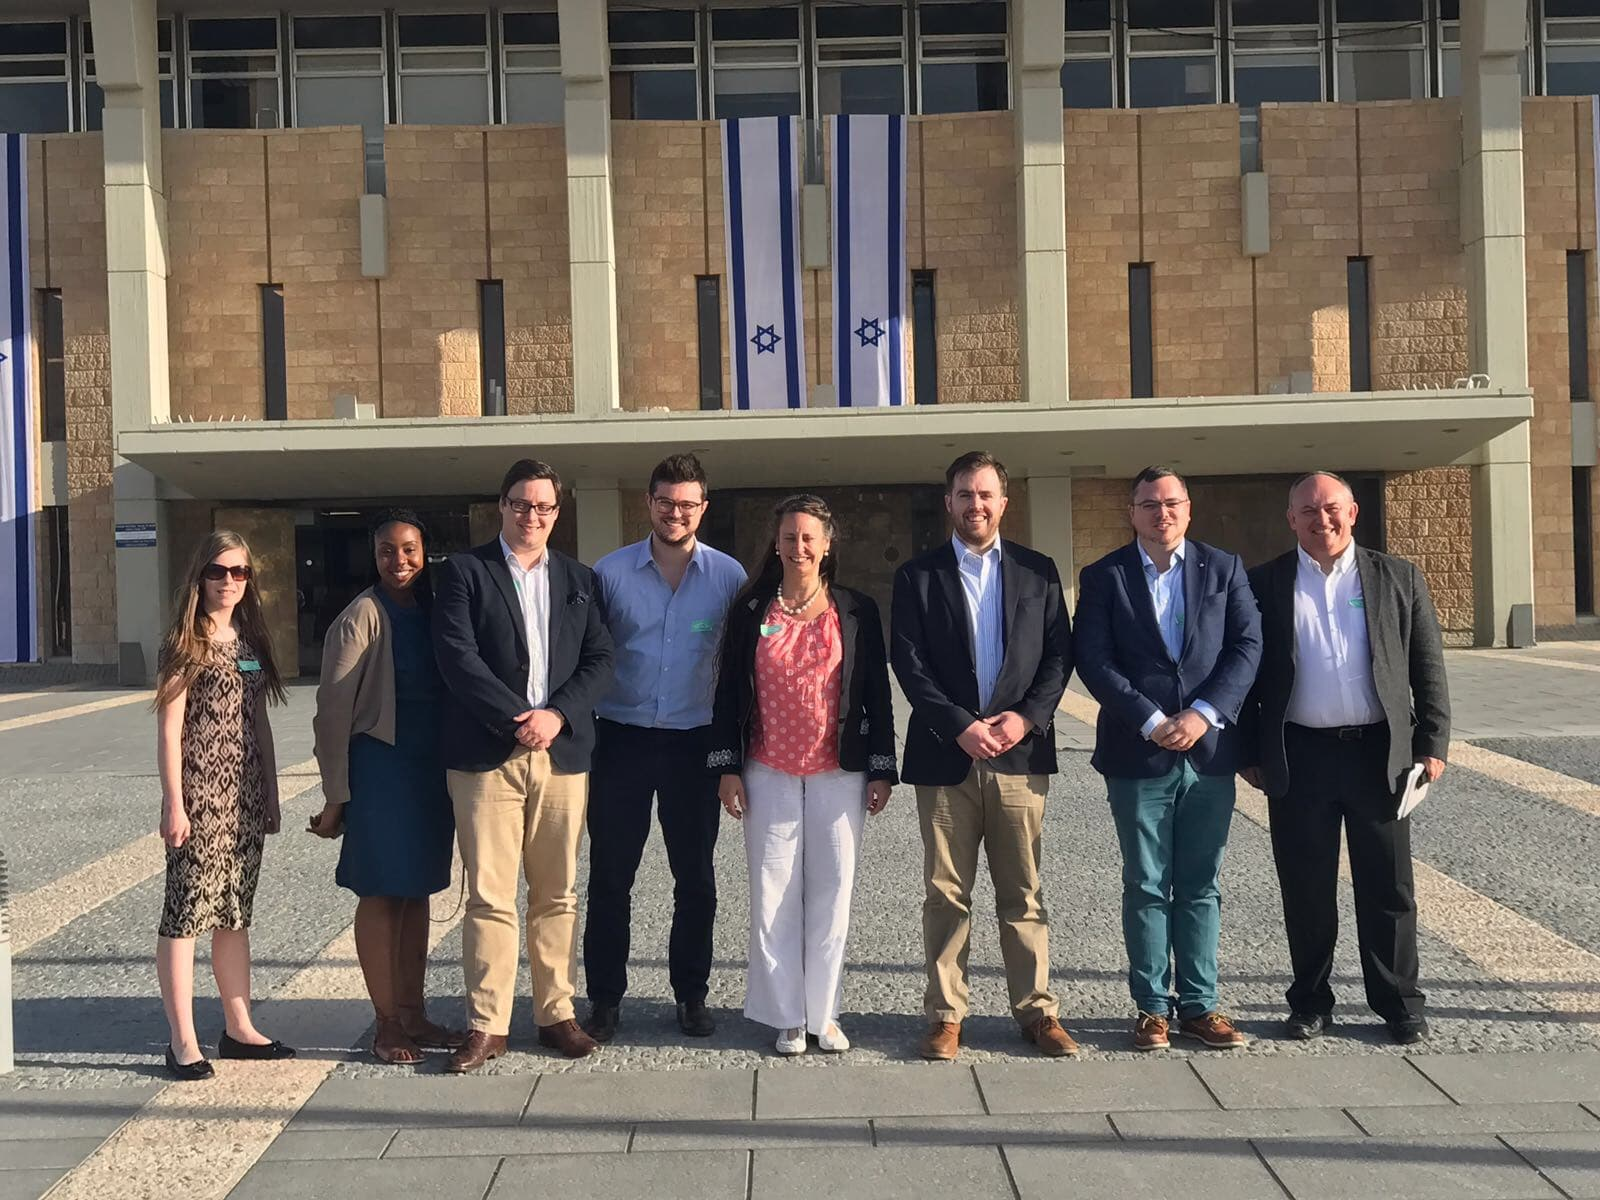 April 2017: CFI coordinates first ever delegation to Israel with the Conservative Christian Fellowship